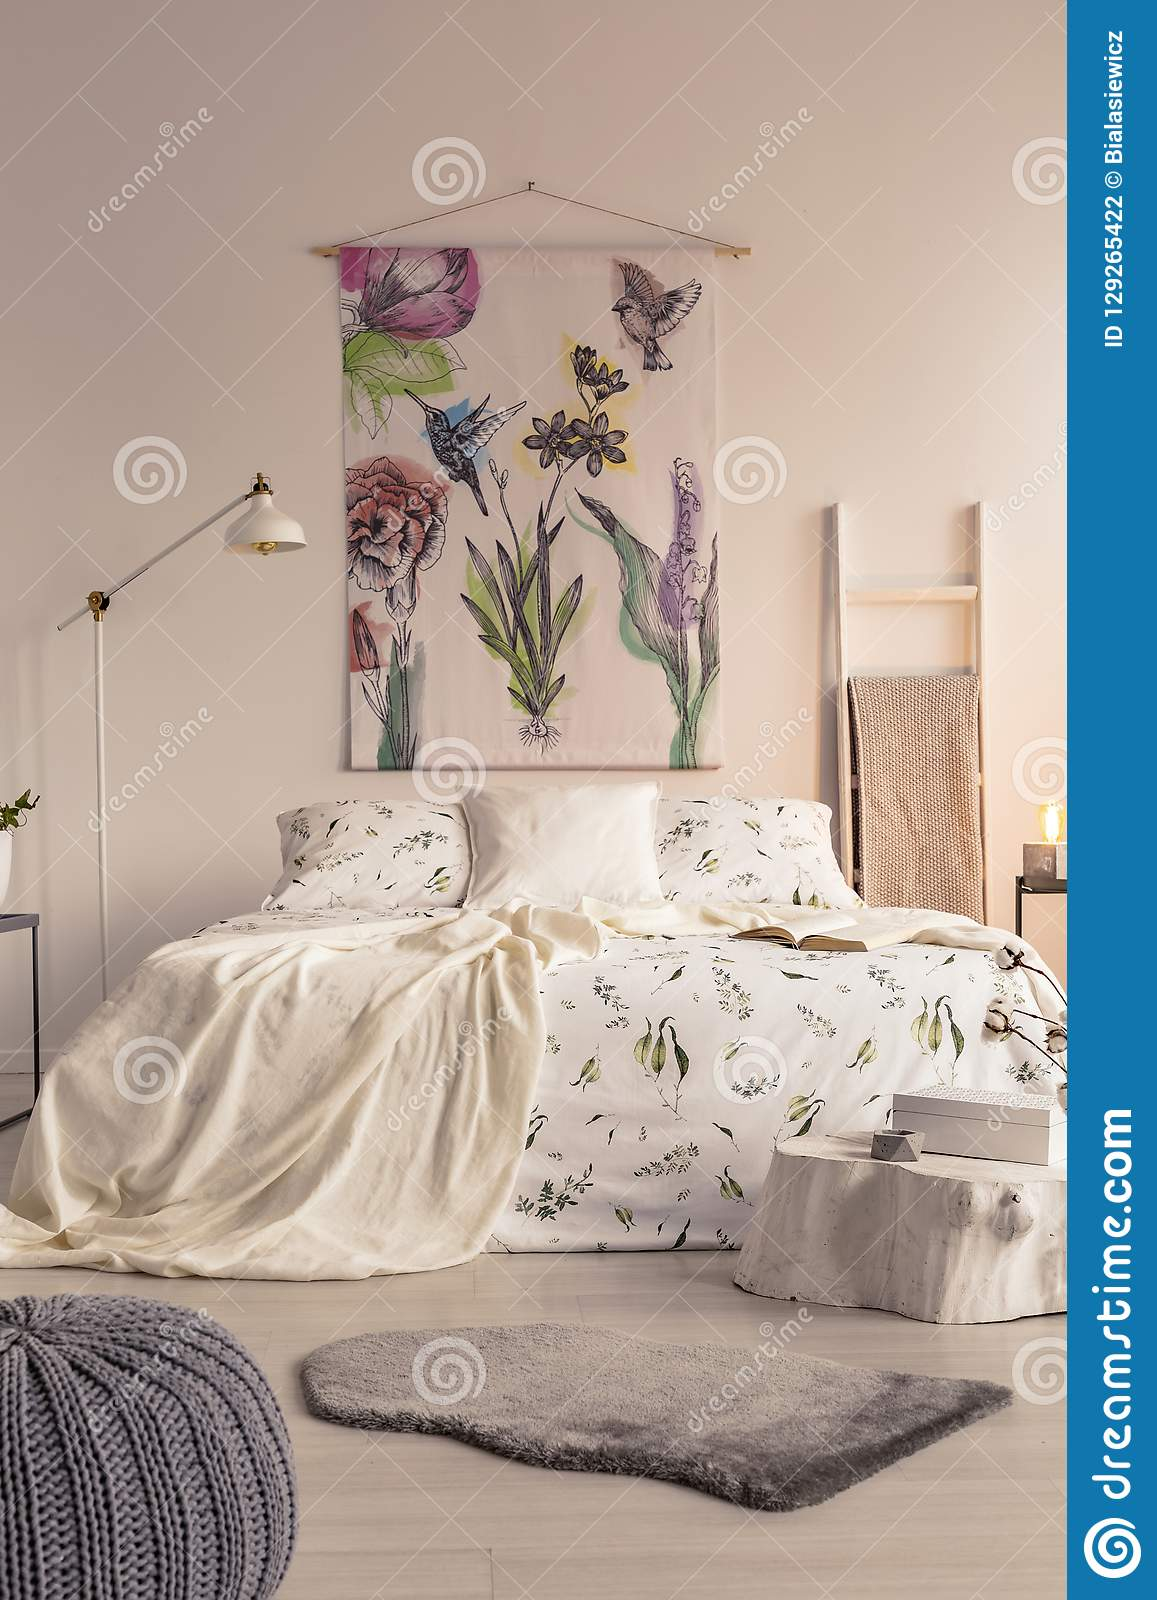 Vertical view of a pastel bedroom interior with a big bed in the middle and a painted fabric art on the wall